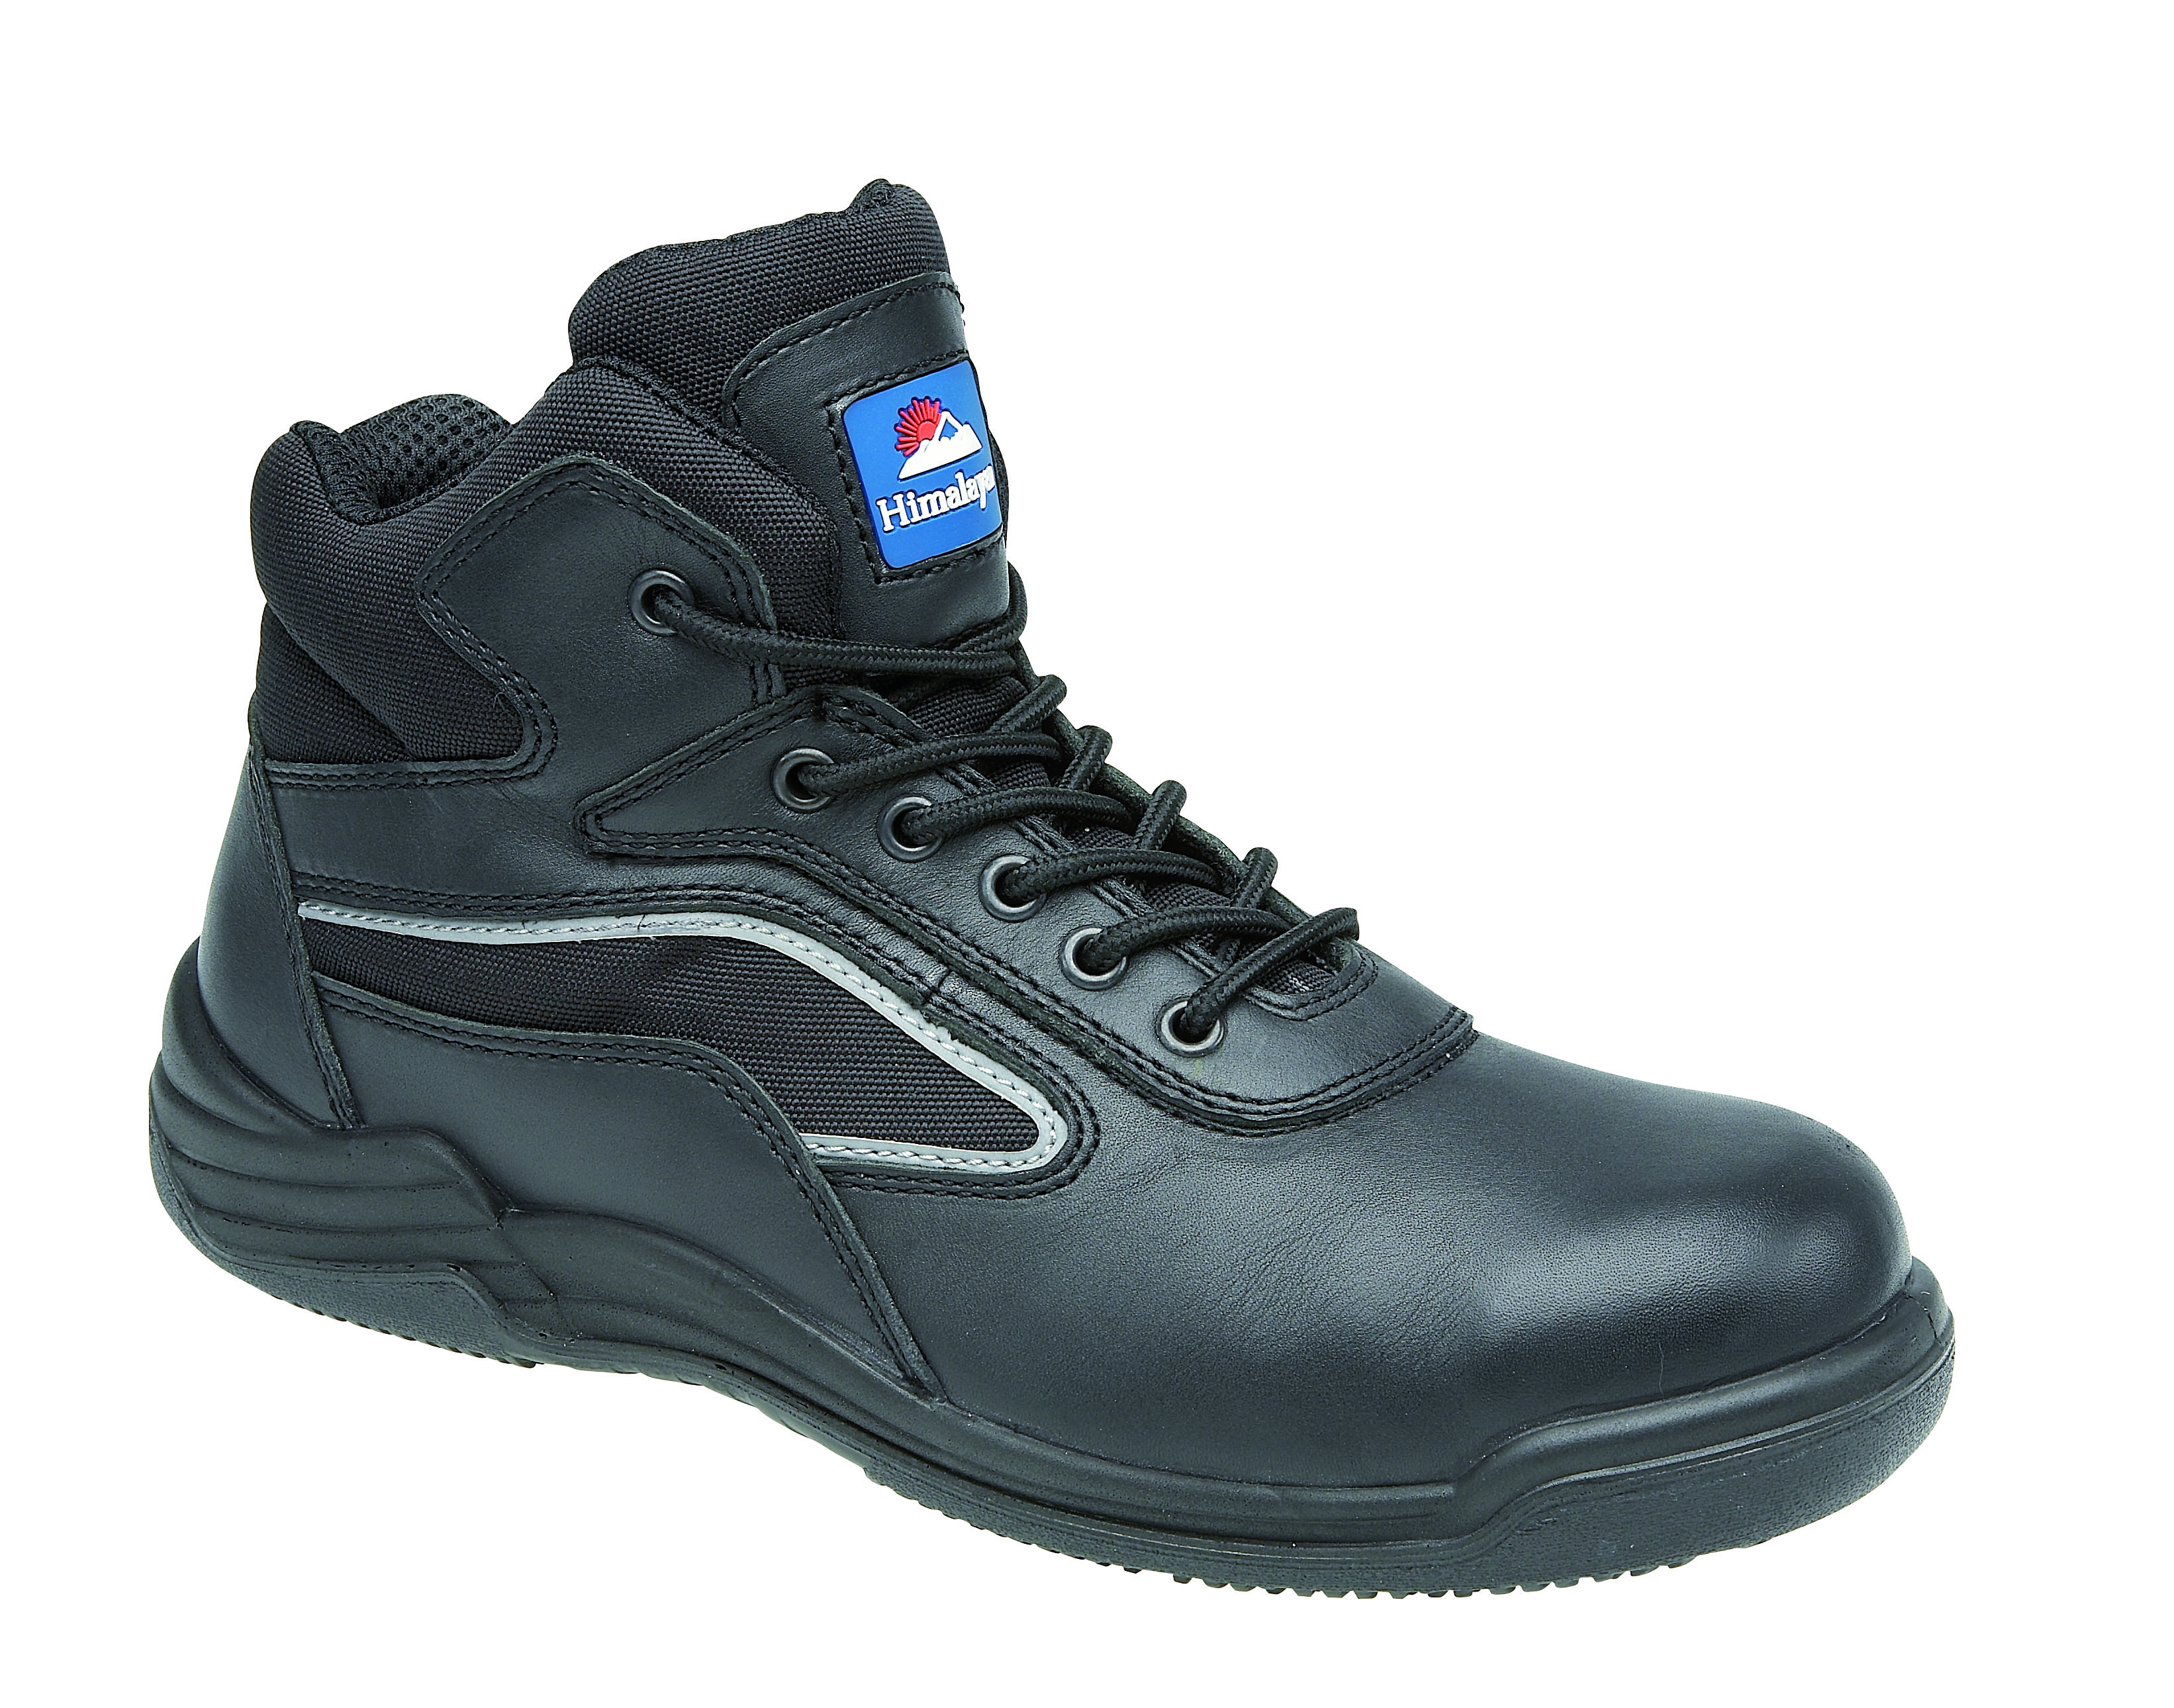 Himalayan Black Leather Safety Trainer Boot Metal Free Cap/Midsole PU Rubber Sole